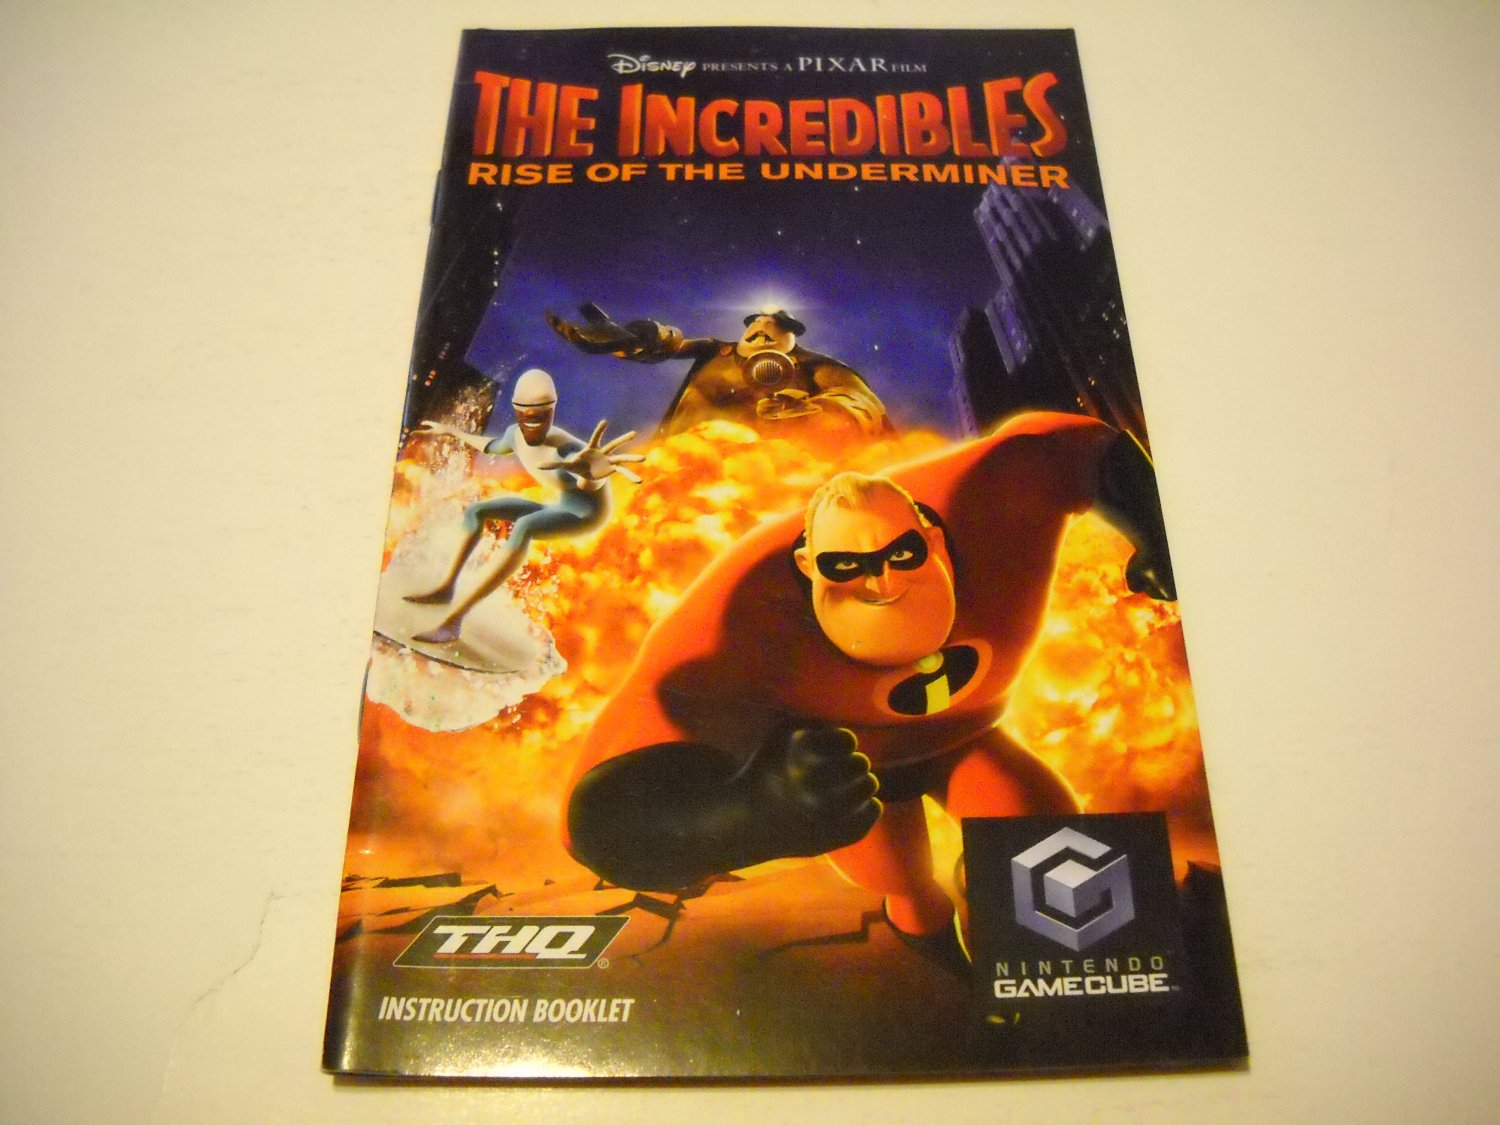 Manual ONLY ~  for The Incredibles   Gamecube